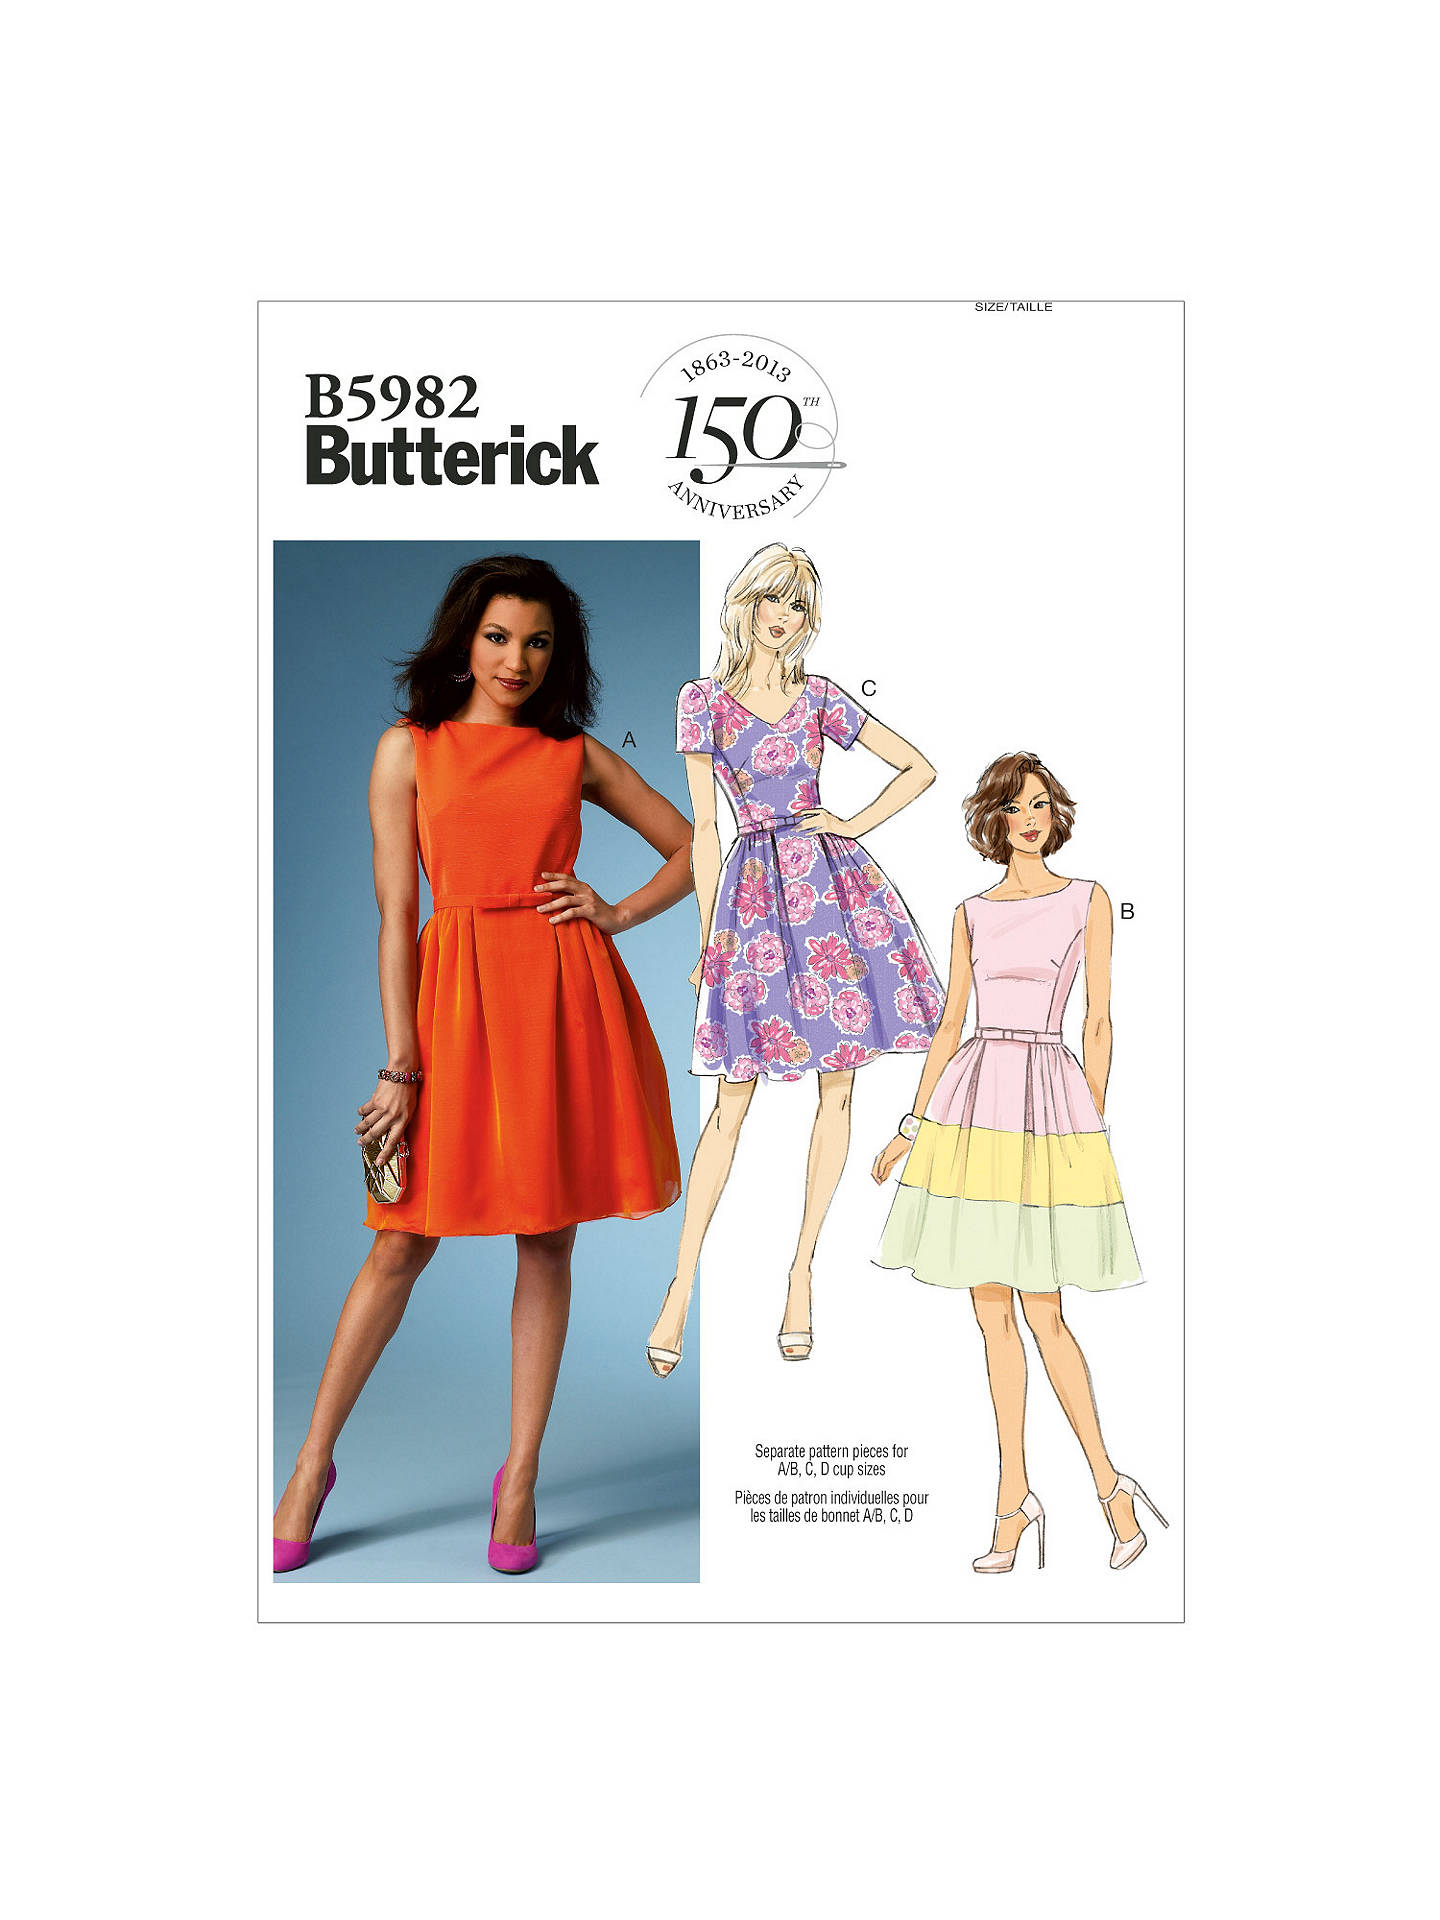 cf7cf5e966f0 Buy Butterick Women's Petite Summer Dress Sewing Pattern, 5982, B5 Online  at johnlewis.